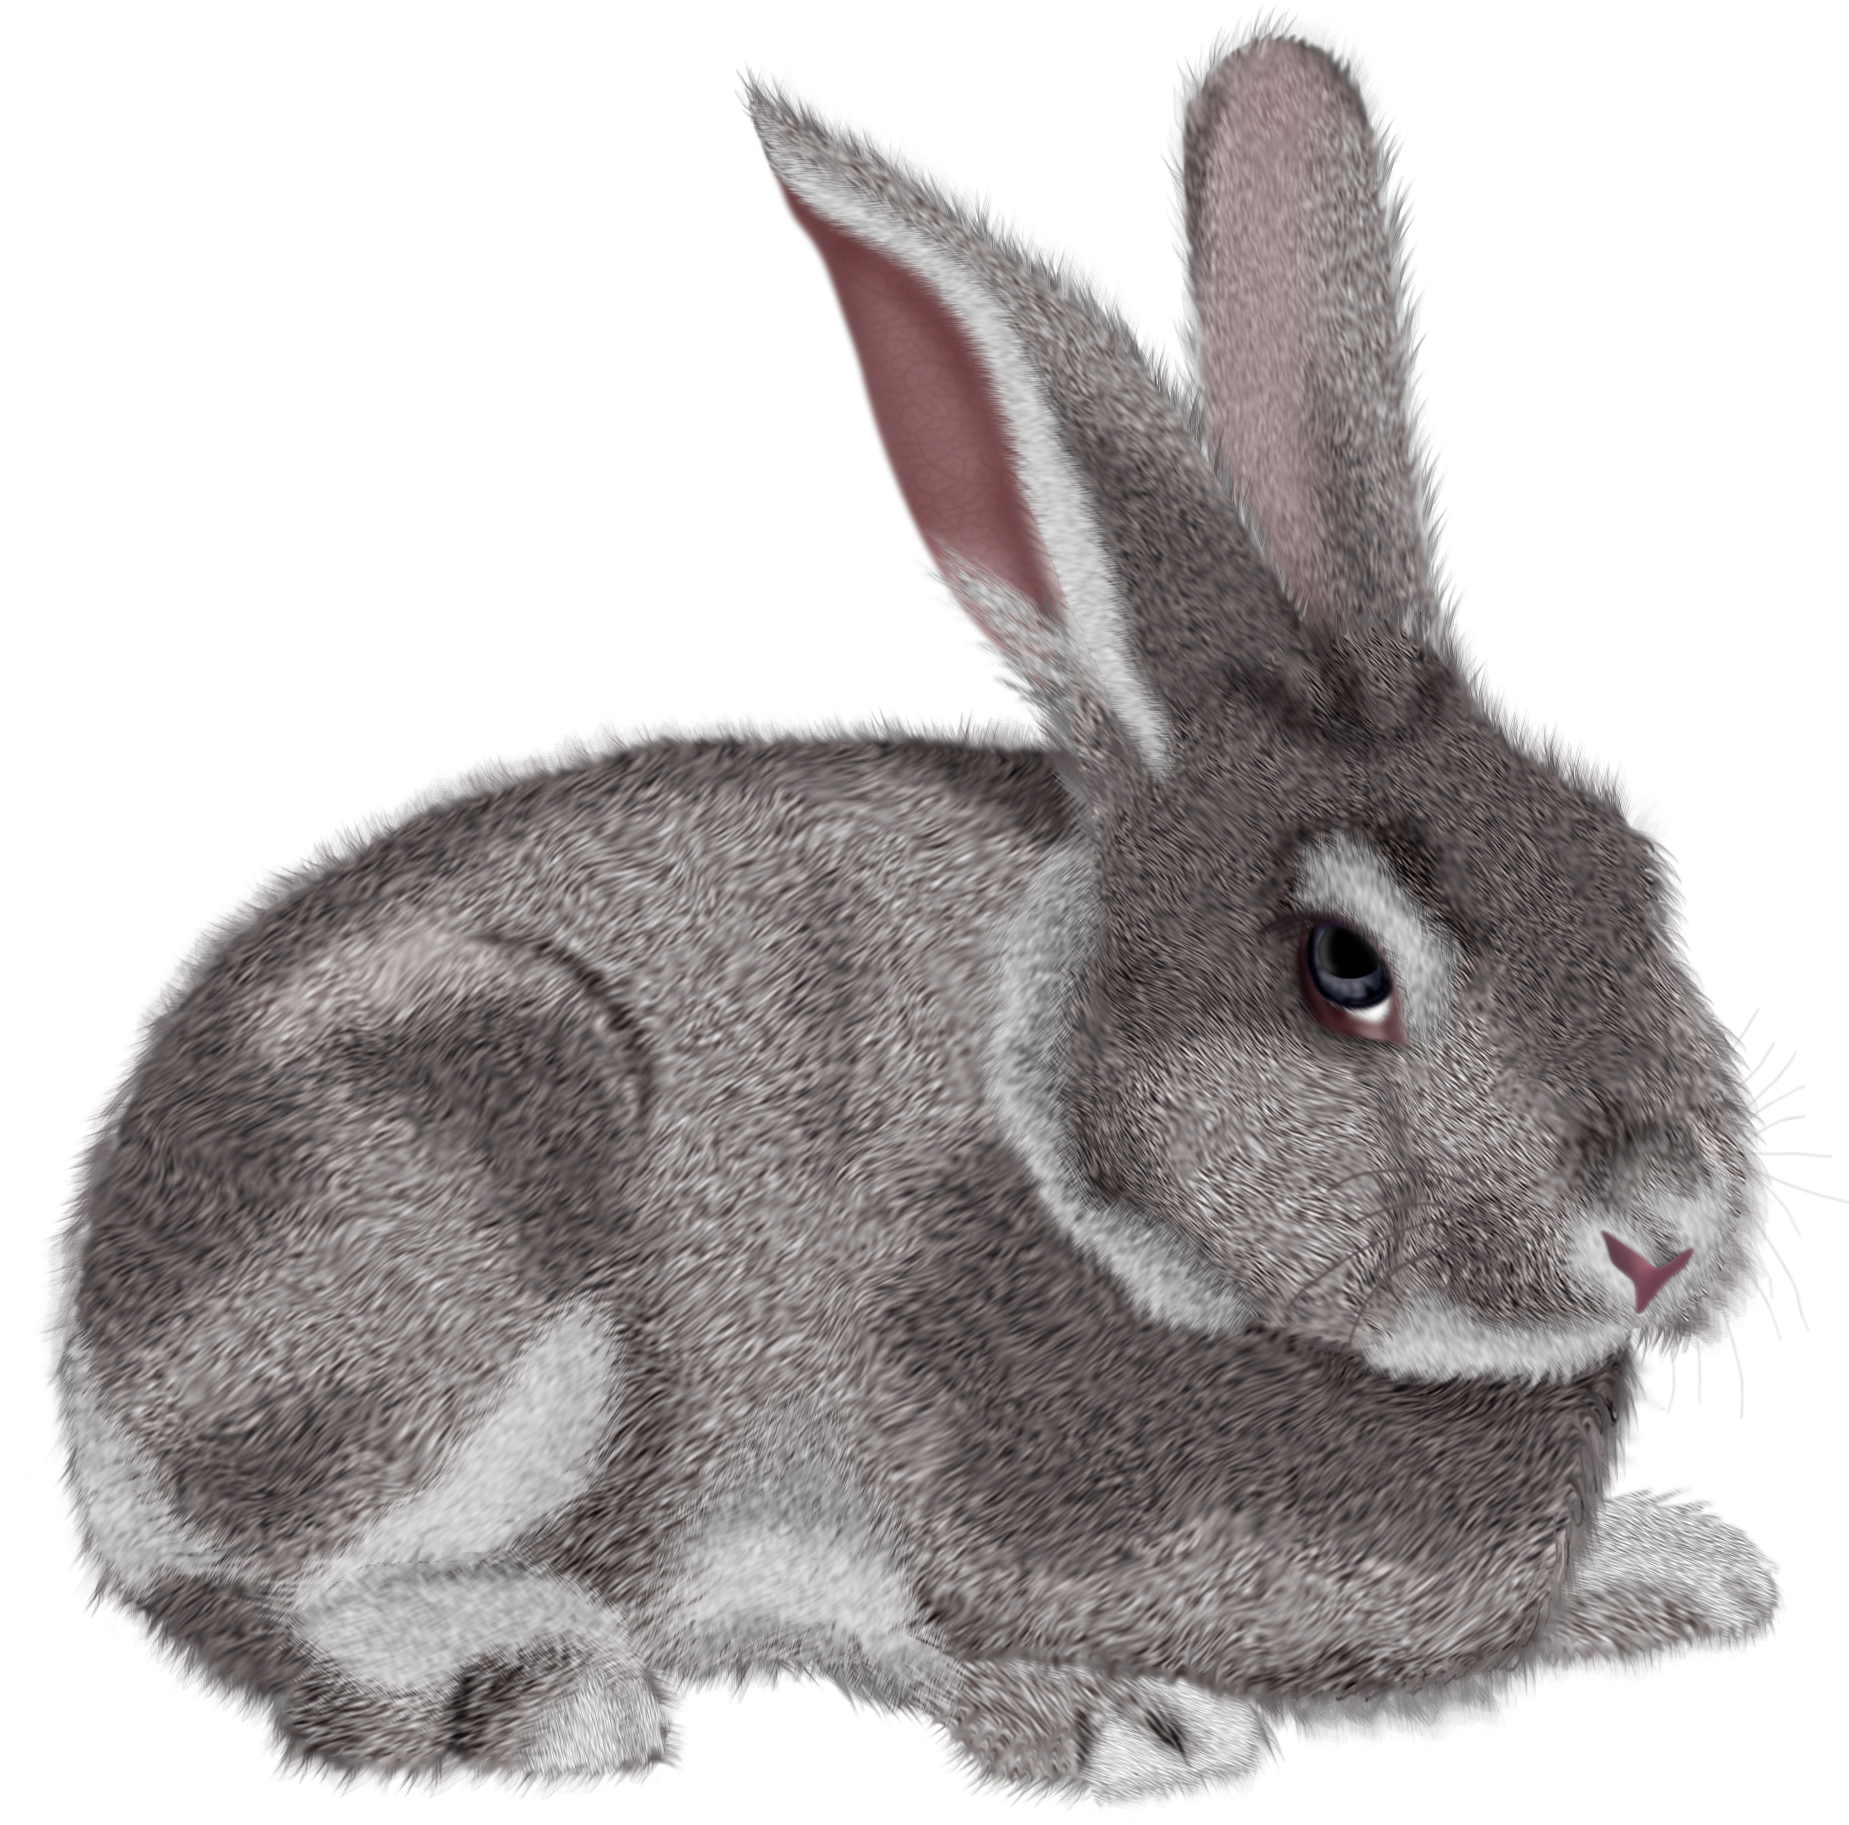 Rabbit with an apple clipart vector library library free clipart rabbit grey rabbit png clipart picture - Clip Art. Net vector library library